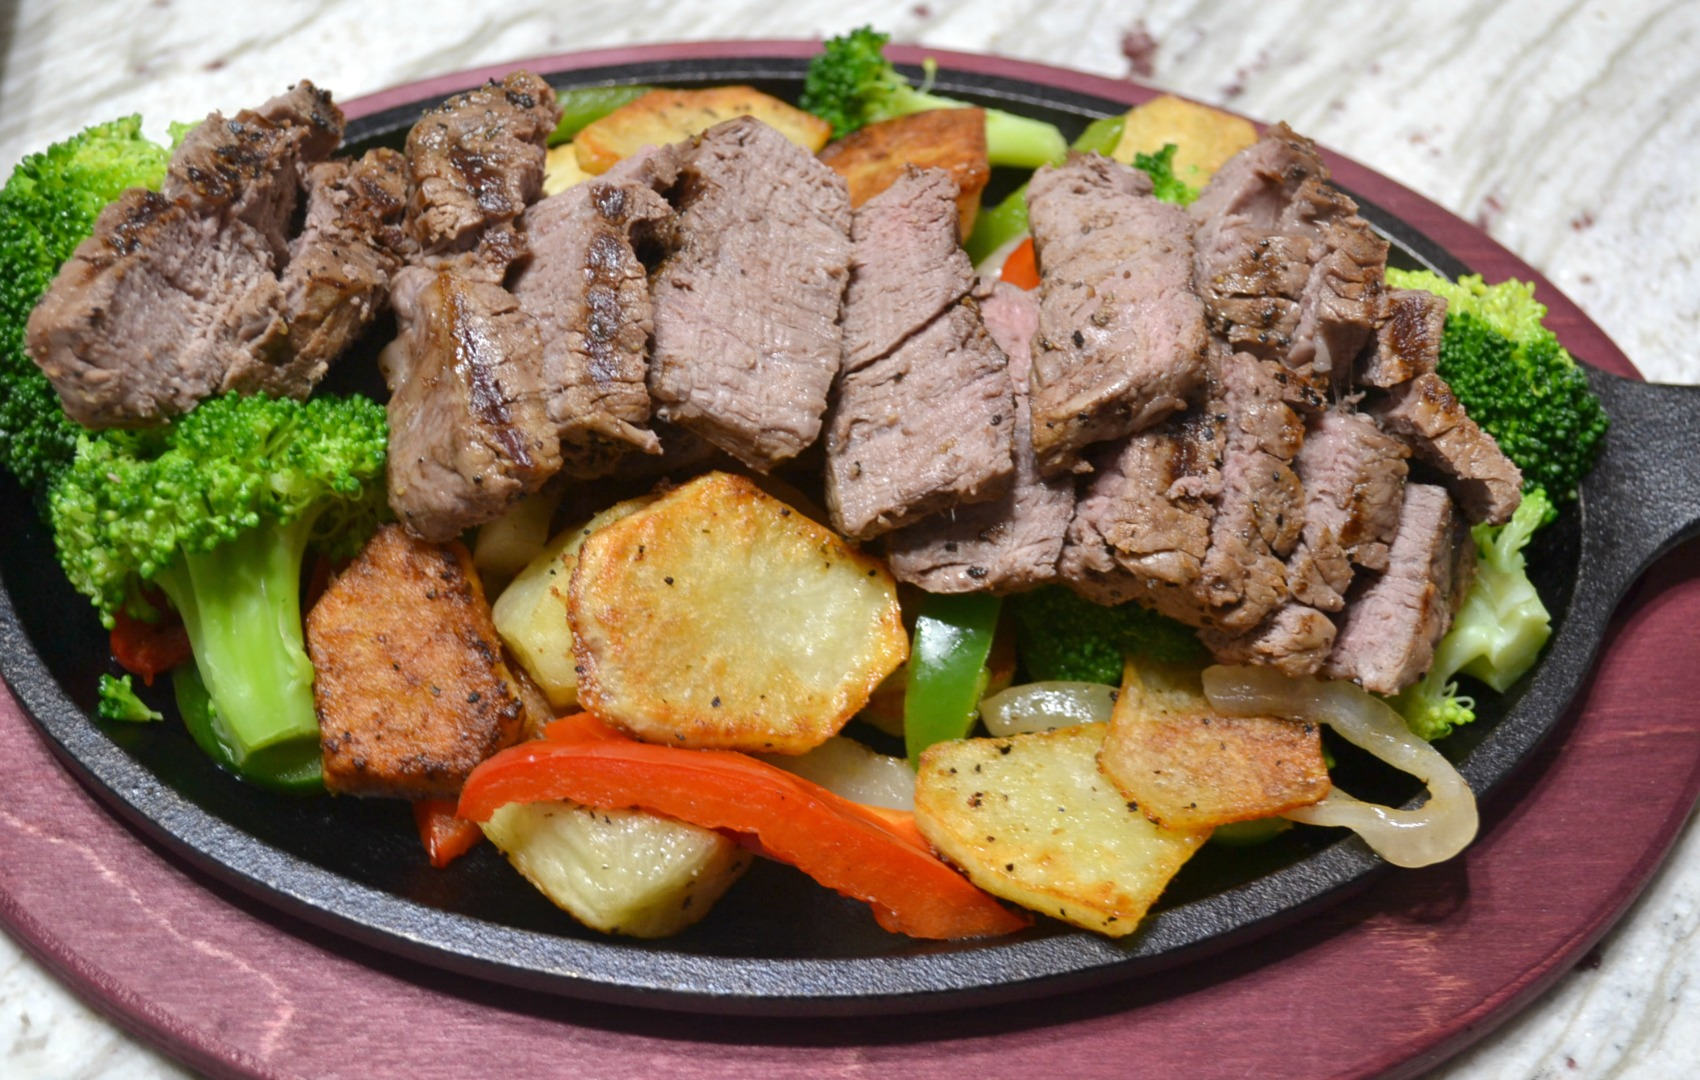 Steak and potato dinner with a delicious twist. Served with fresh veggies on a cast iron skillet